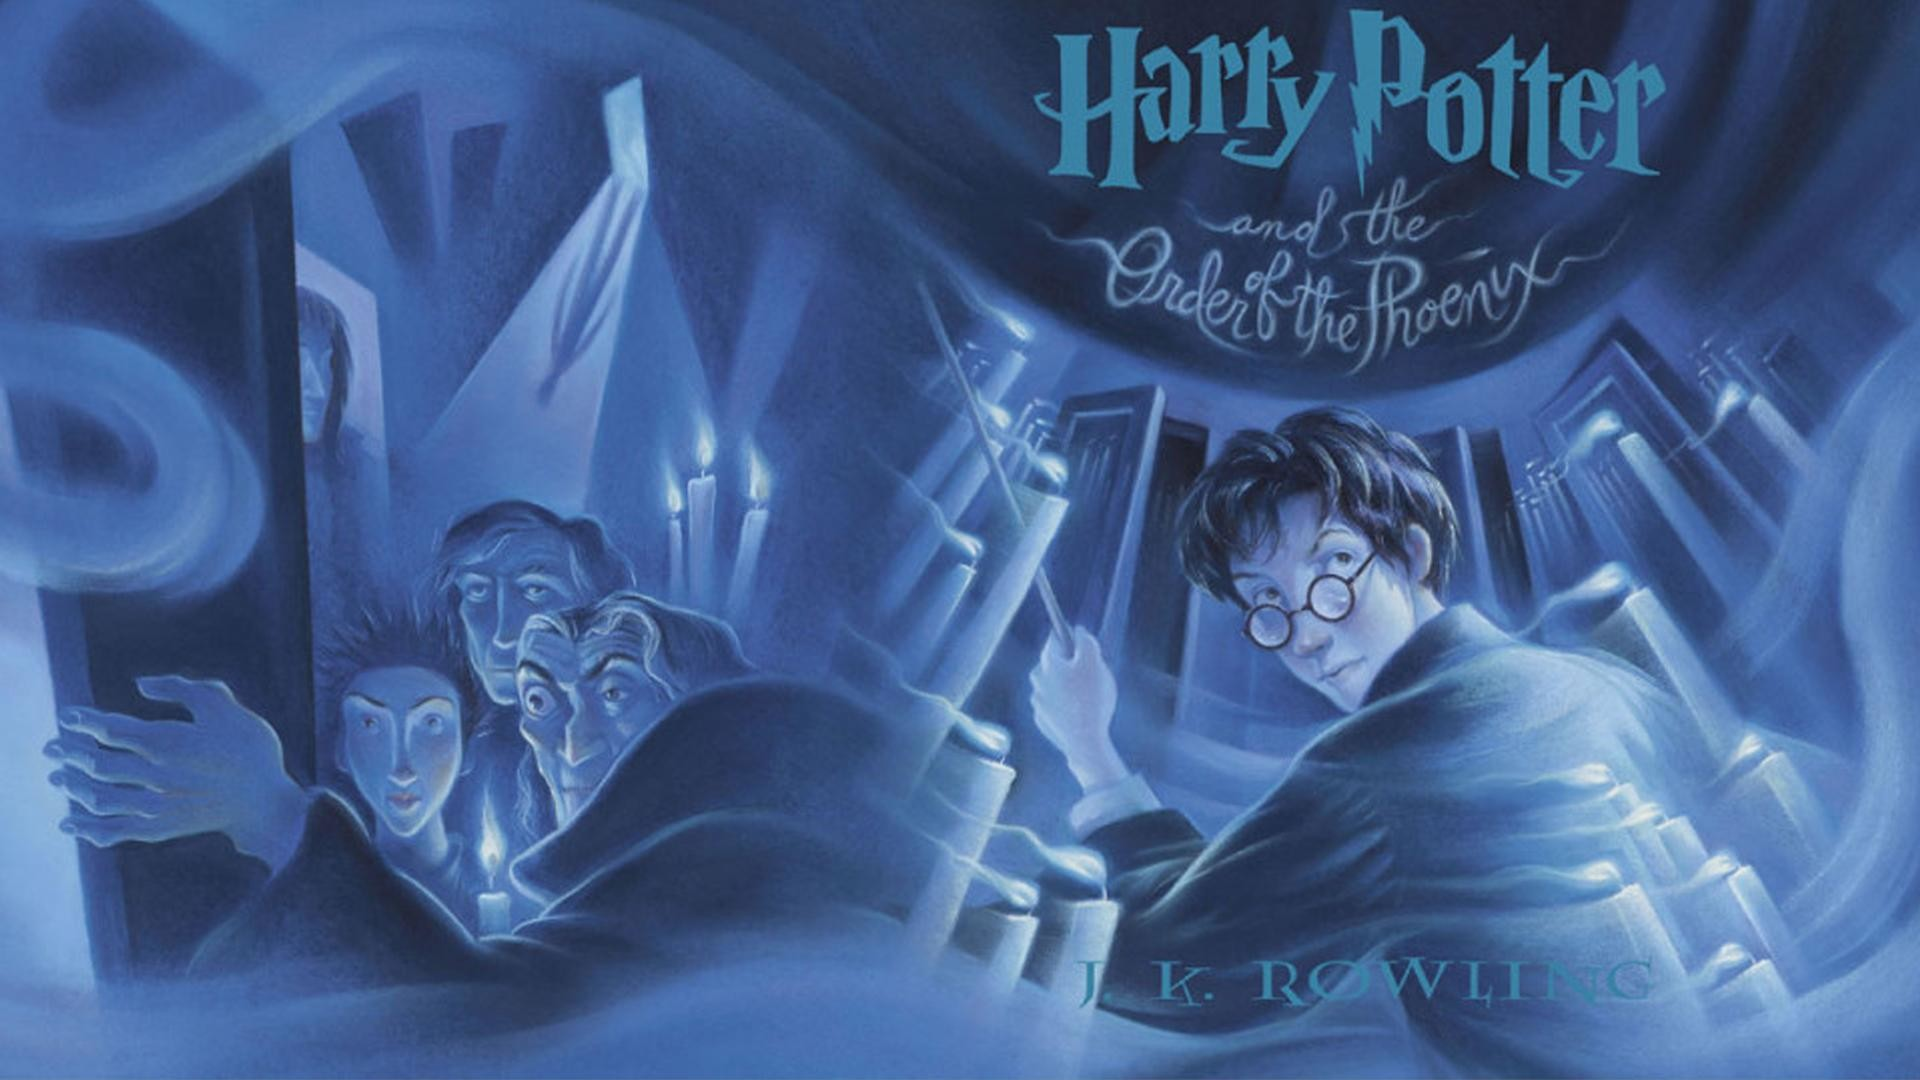 Amazing Wallpaper Harry Potter Purple - 950225-large-harry-potter-book-wallpapers-1920x1080  Pictures_549399.jpg